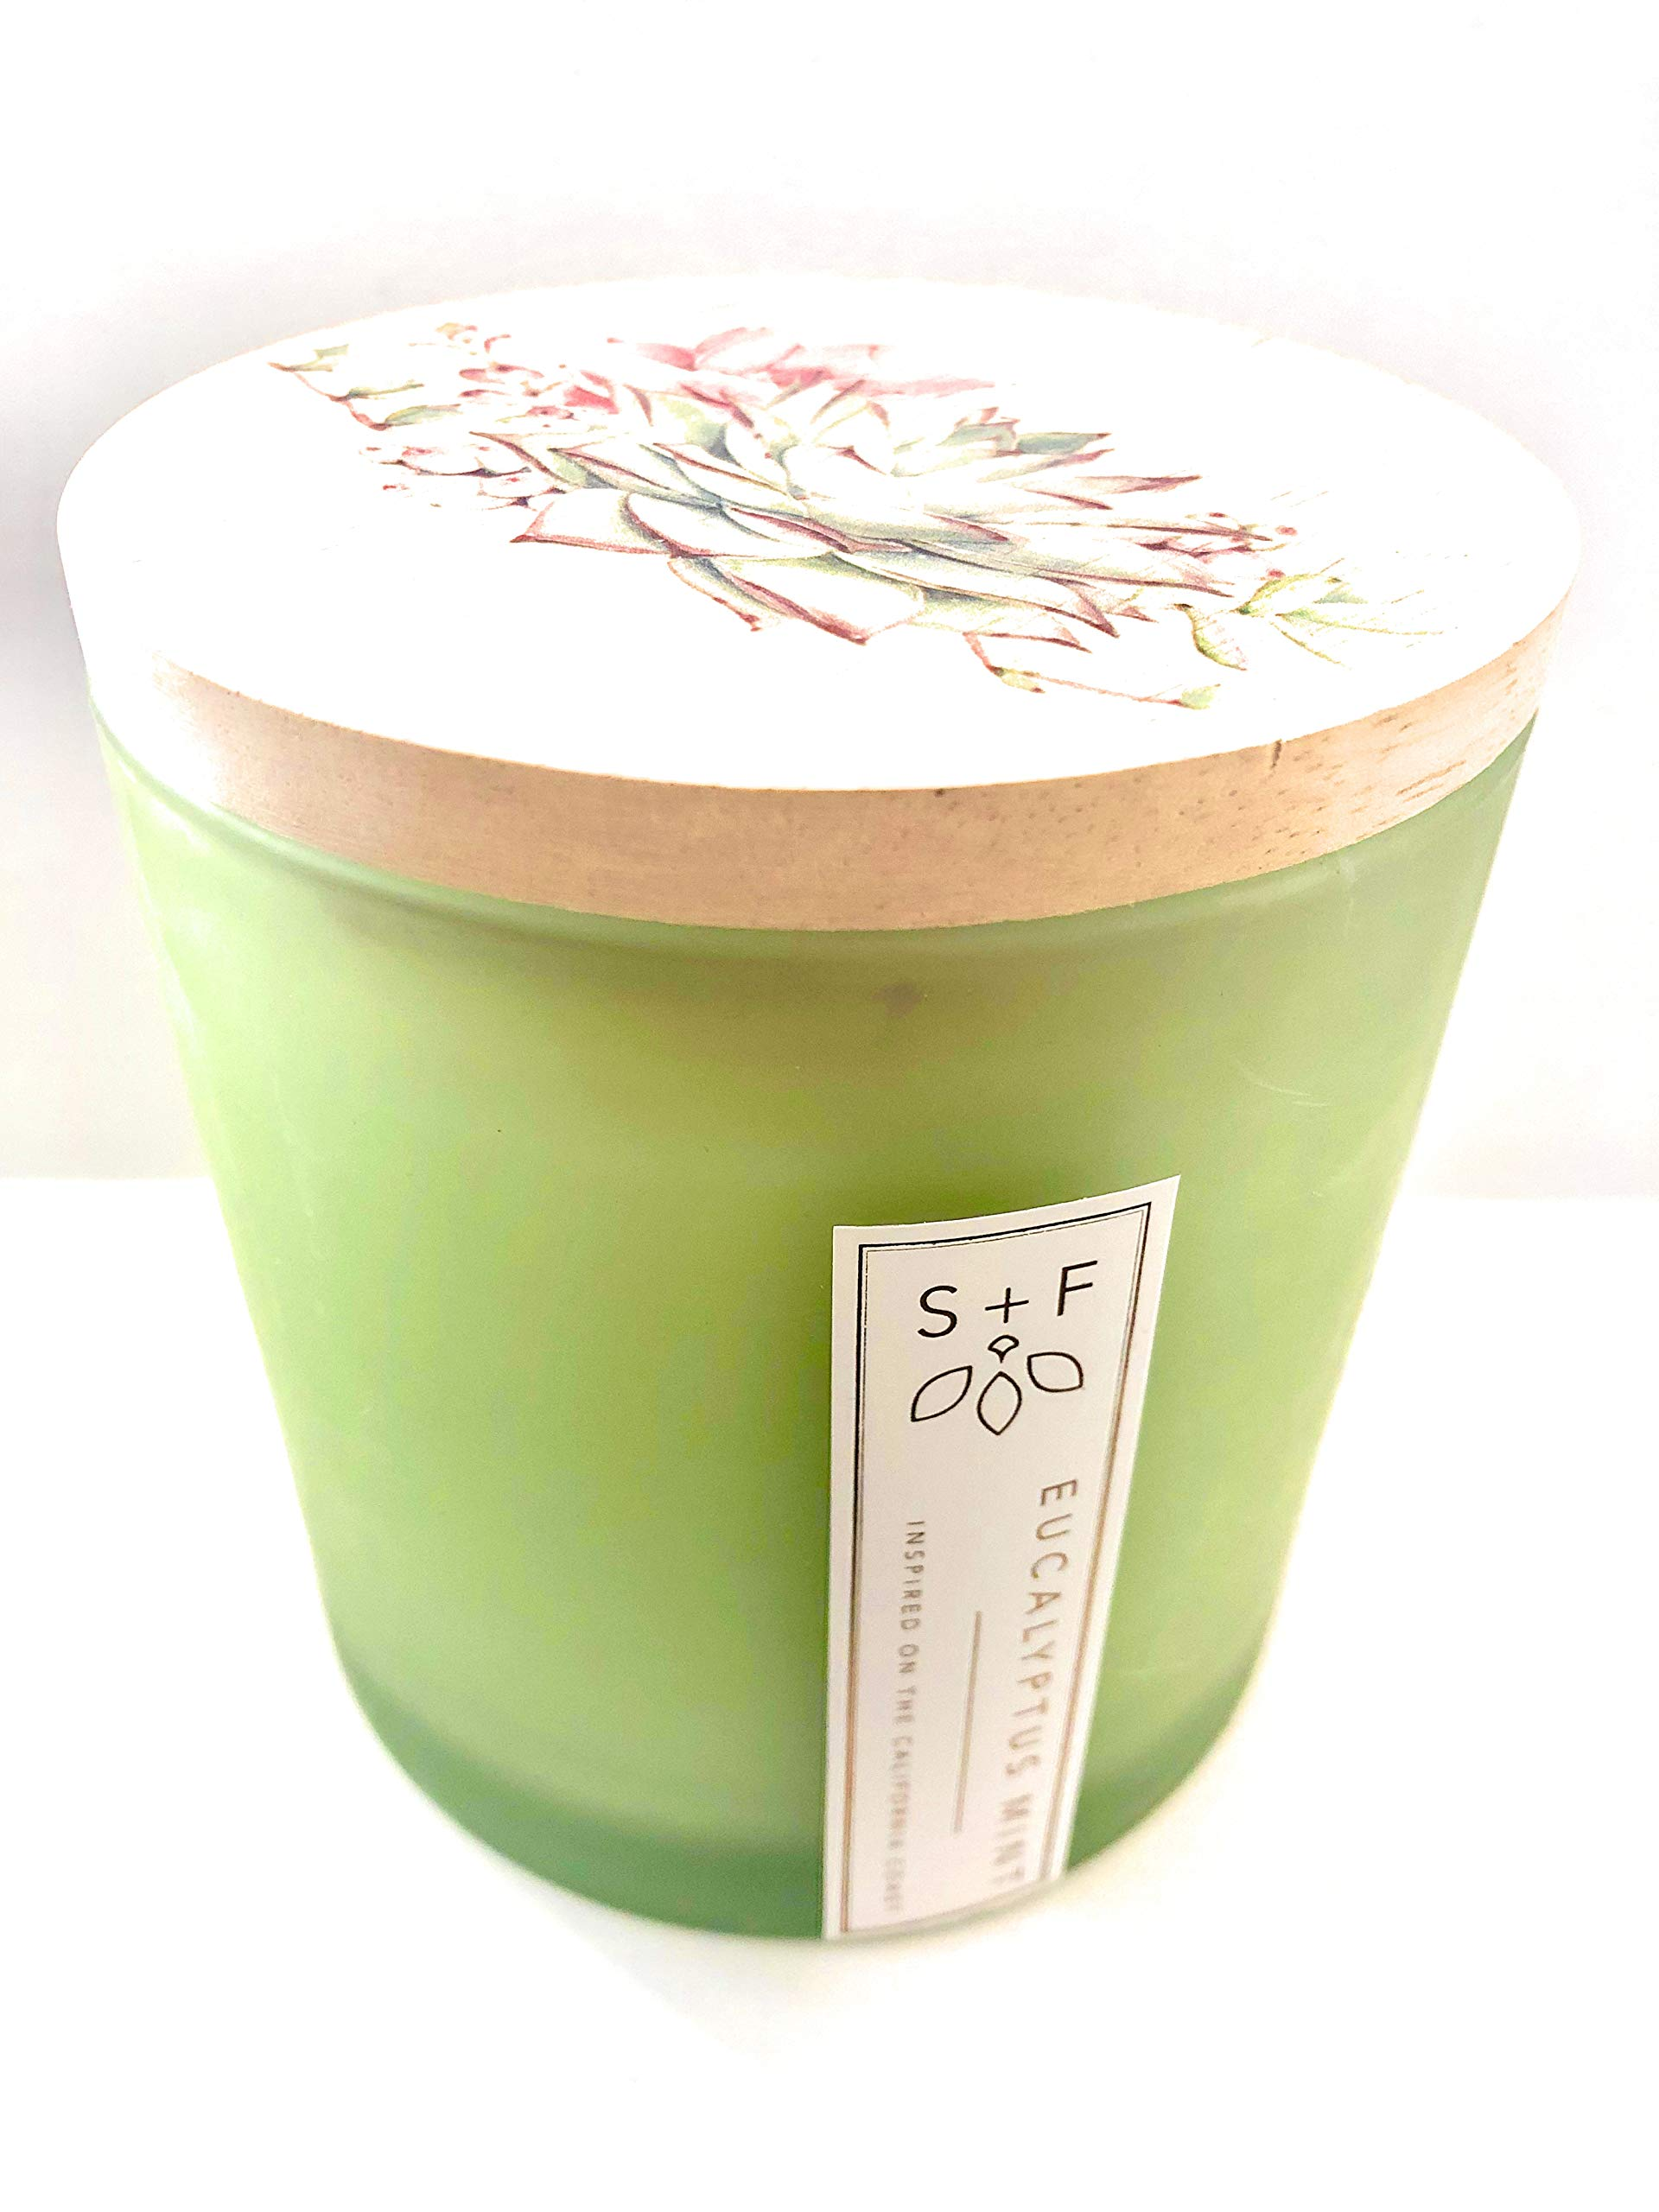 Sand + Fog Large Triple Wick Eucalyptus Mint Candle with Lid 25 Oz